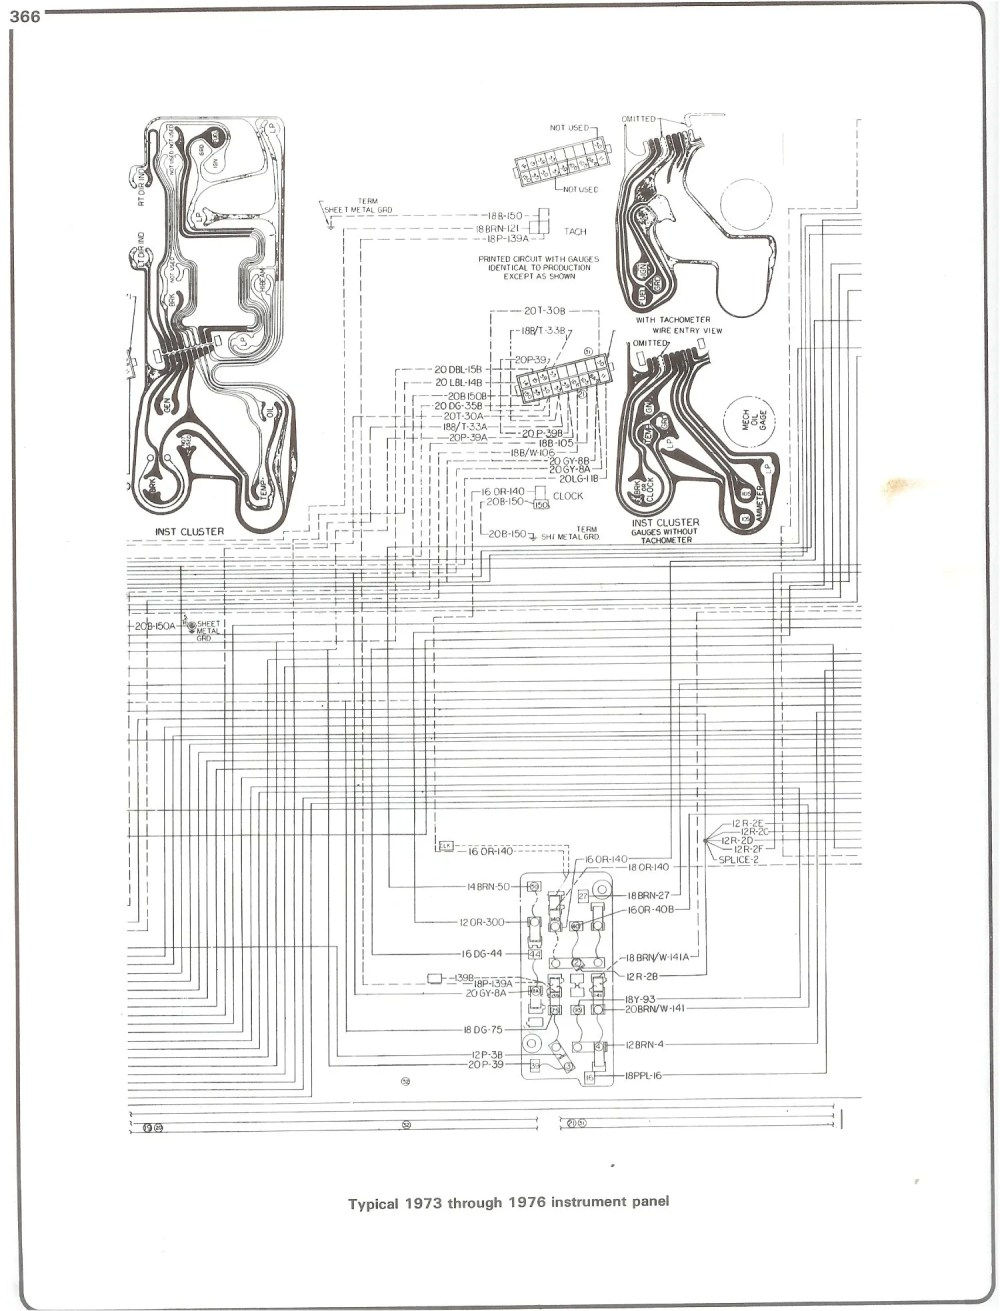 medium resolution of 1983 chevy p30 wiring diagram wiring diagram used complete 73 87 wiring diagrams 1983 chevy p30